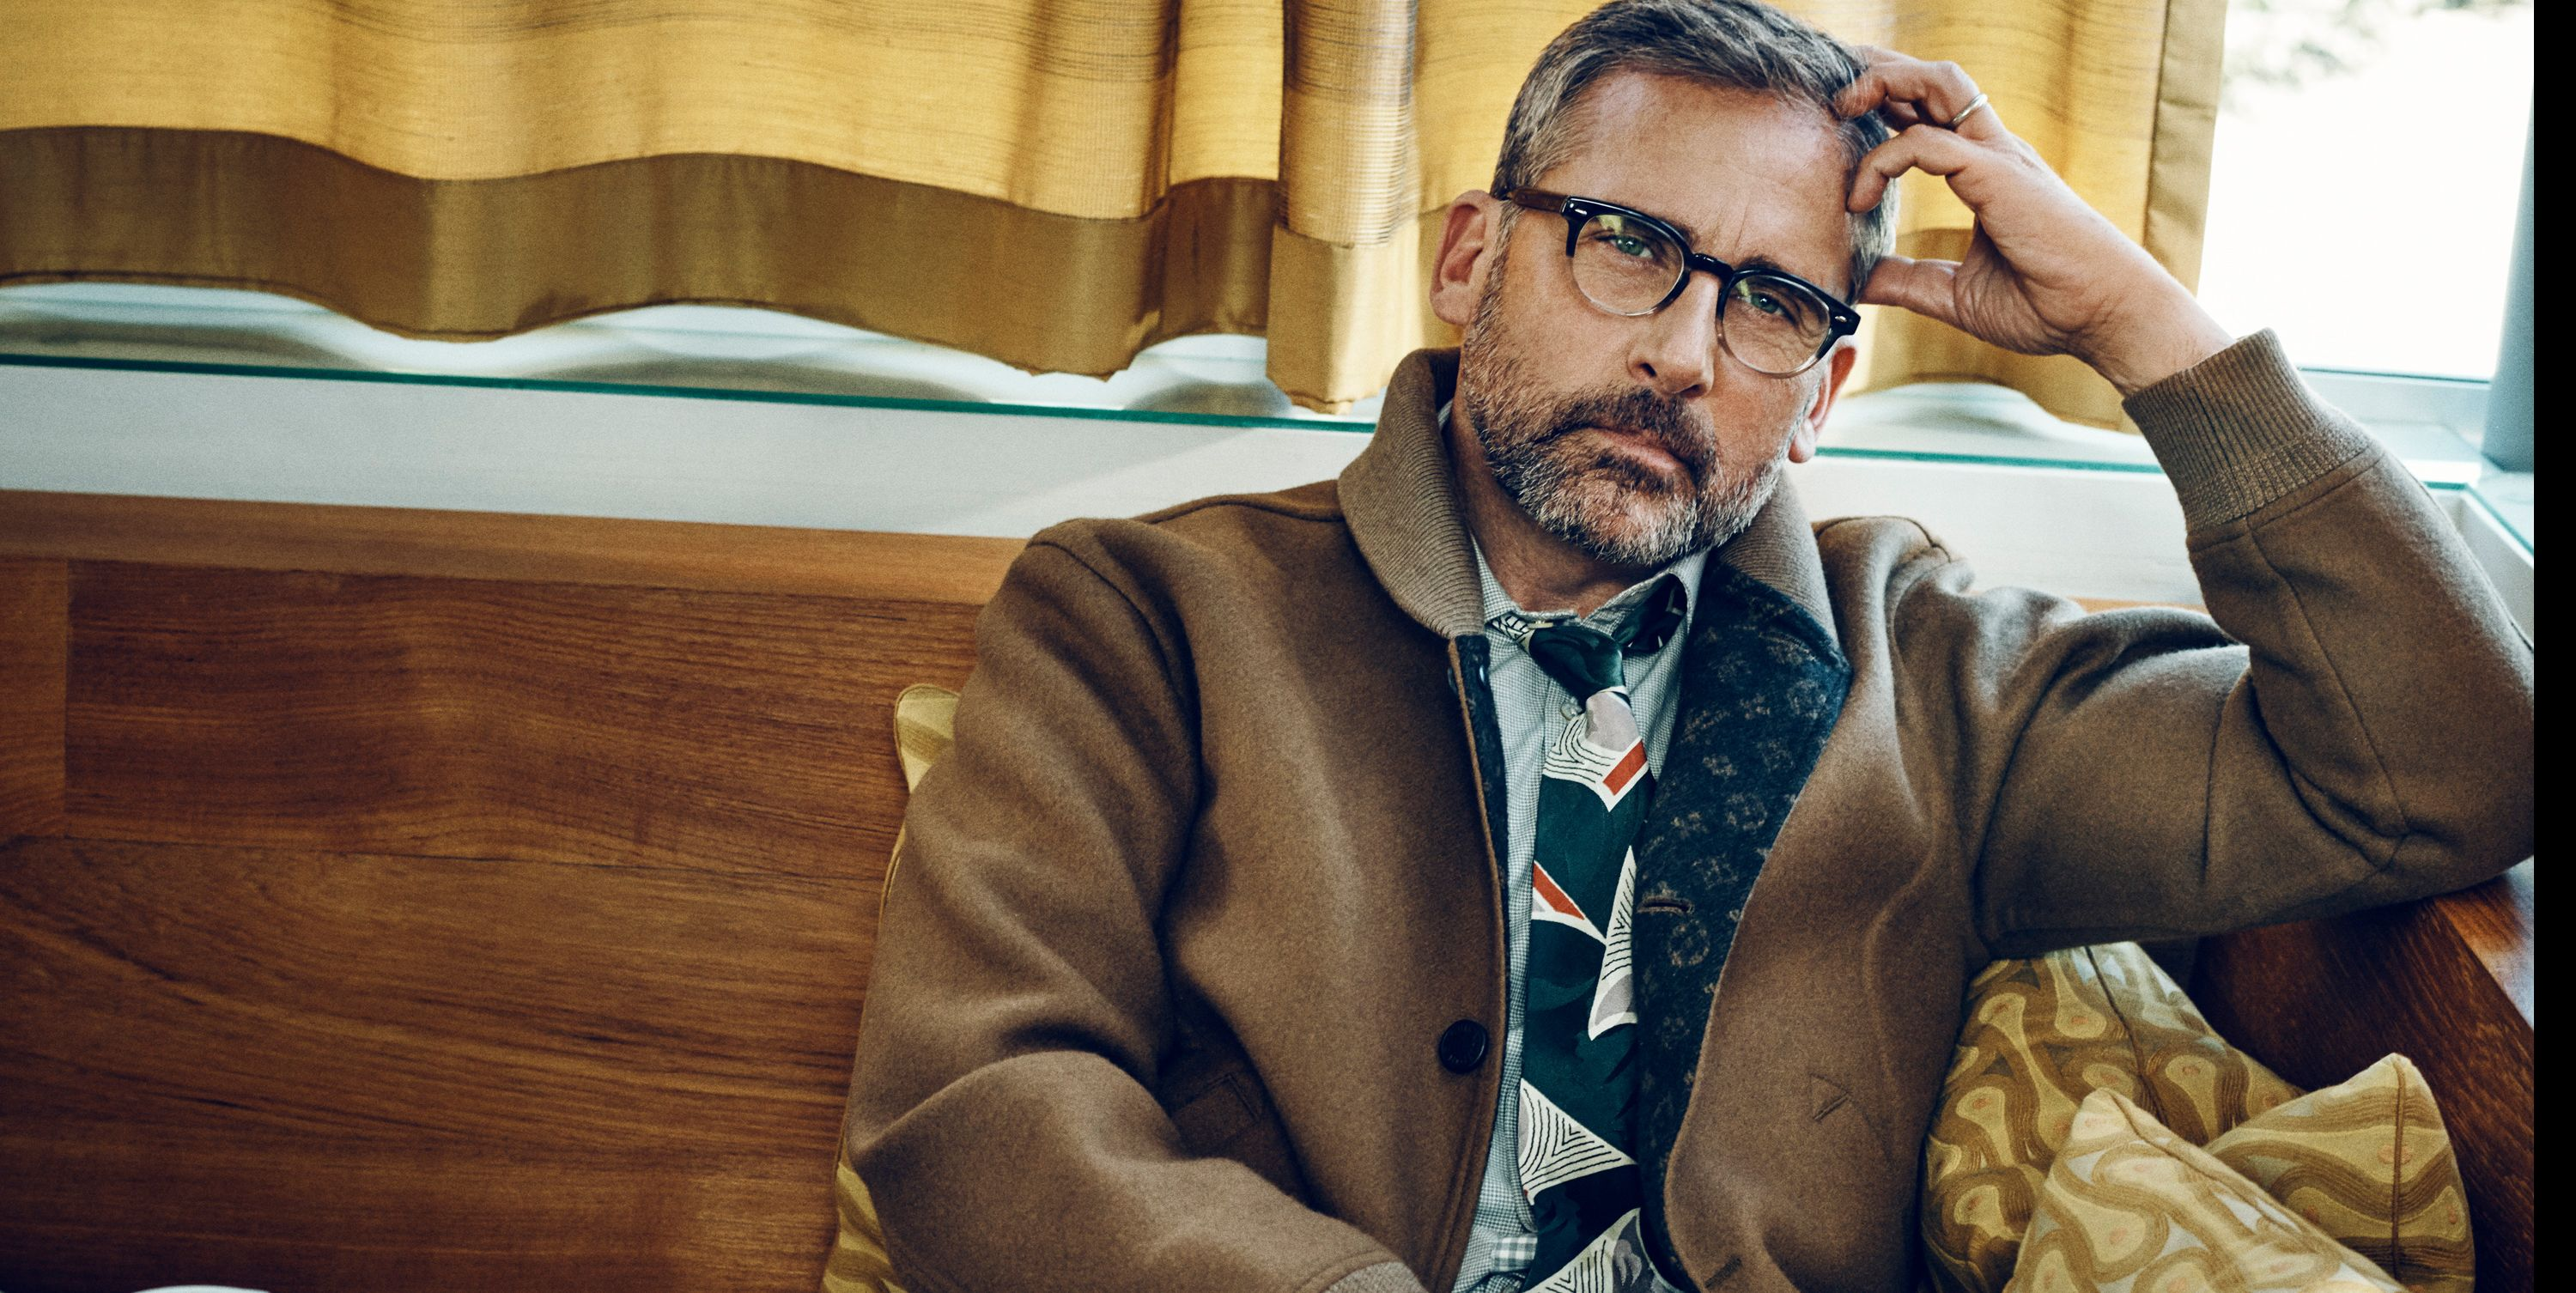 Steve Carell Was Never In It For The Laughs